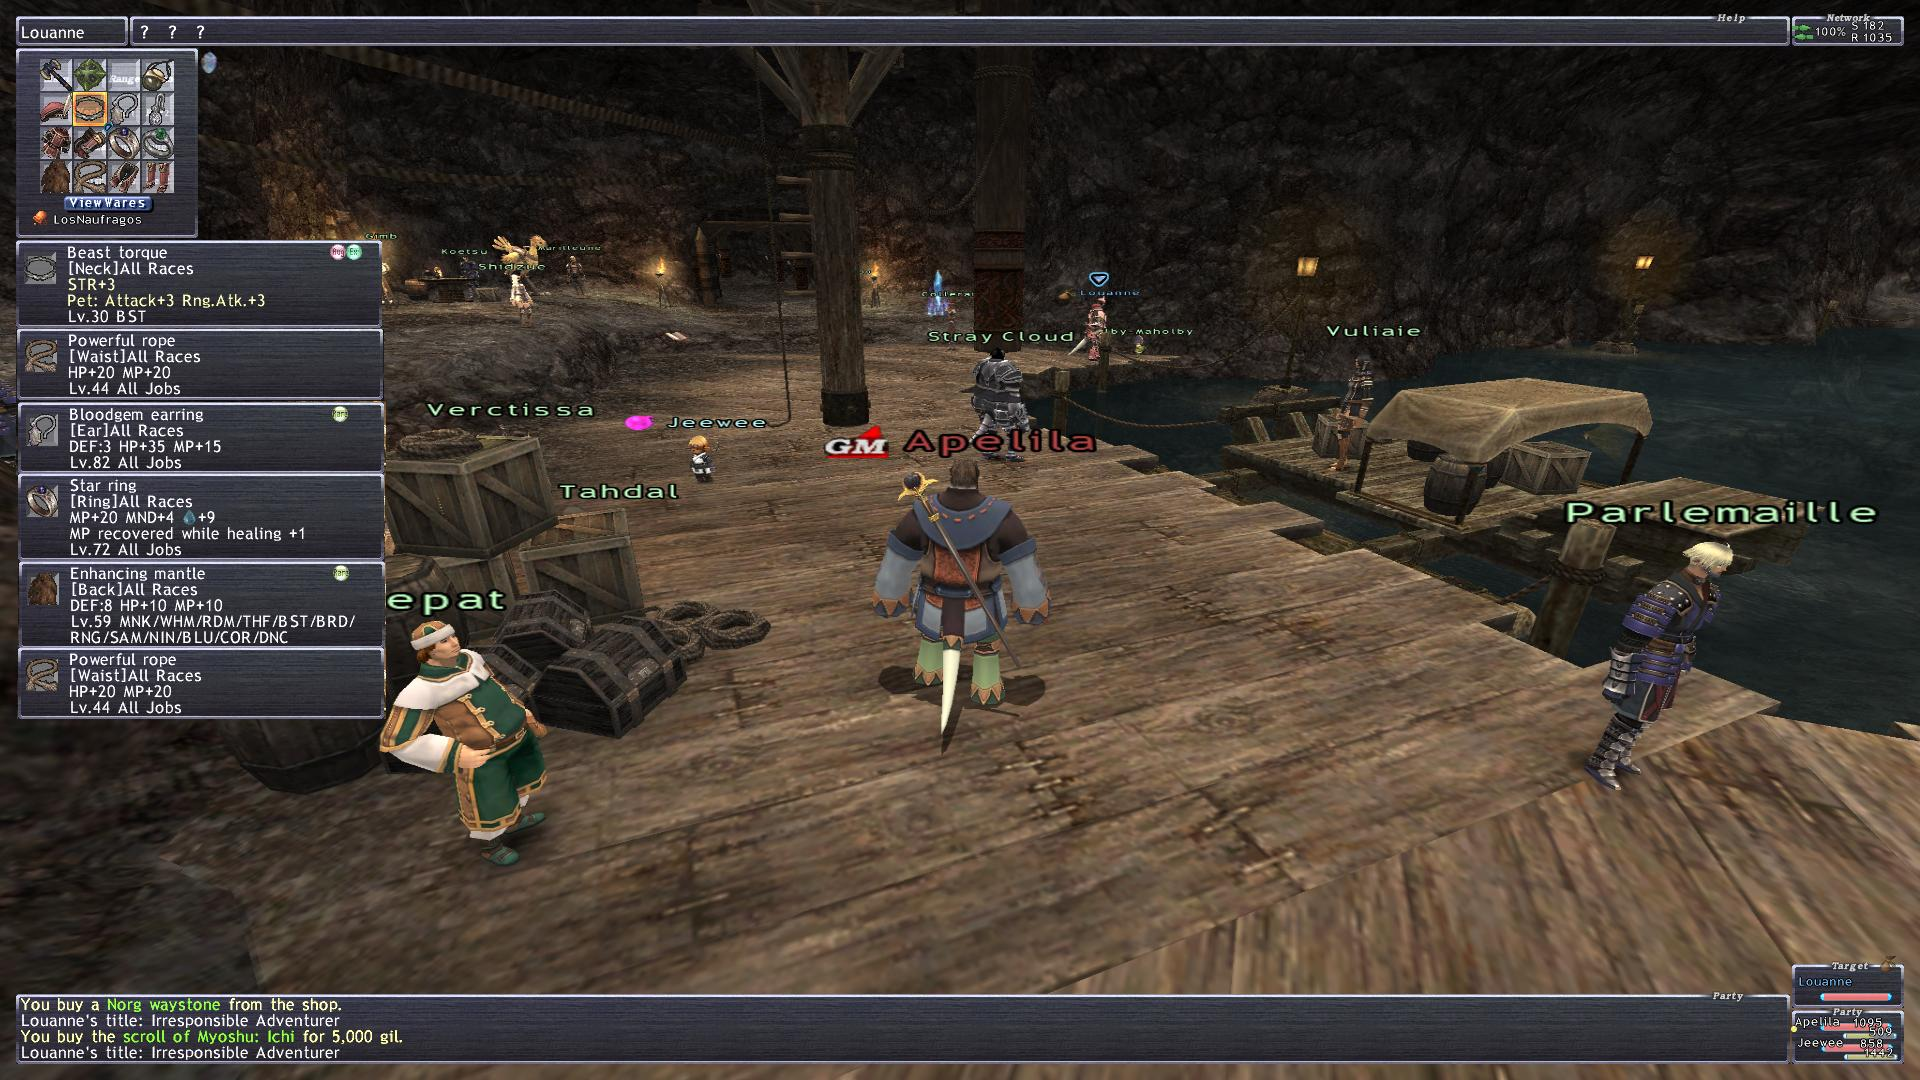 apelila ffxi your bear also thread time spend fucks unemployed paying this economy taxes rest players sucking would without cock addictions german full about they money their commenting plays into wouldnt were social angry xxiii player guys rude being trying impress decade almost gimpconfusedwtf jobs enough well playing started dont